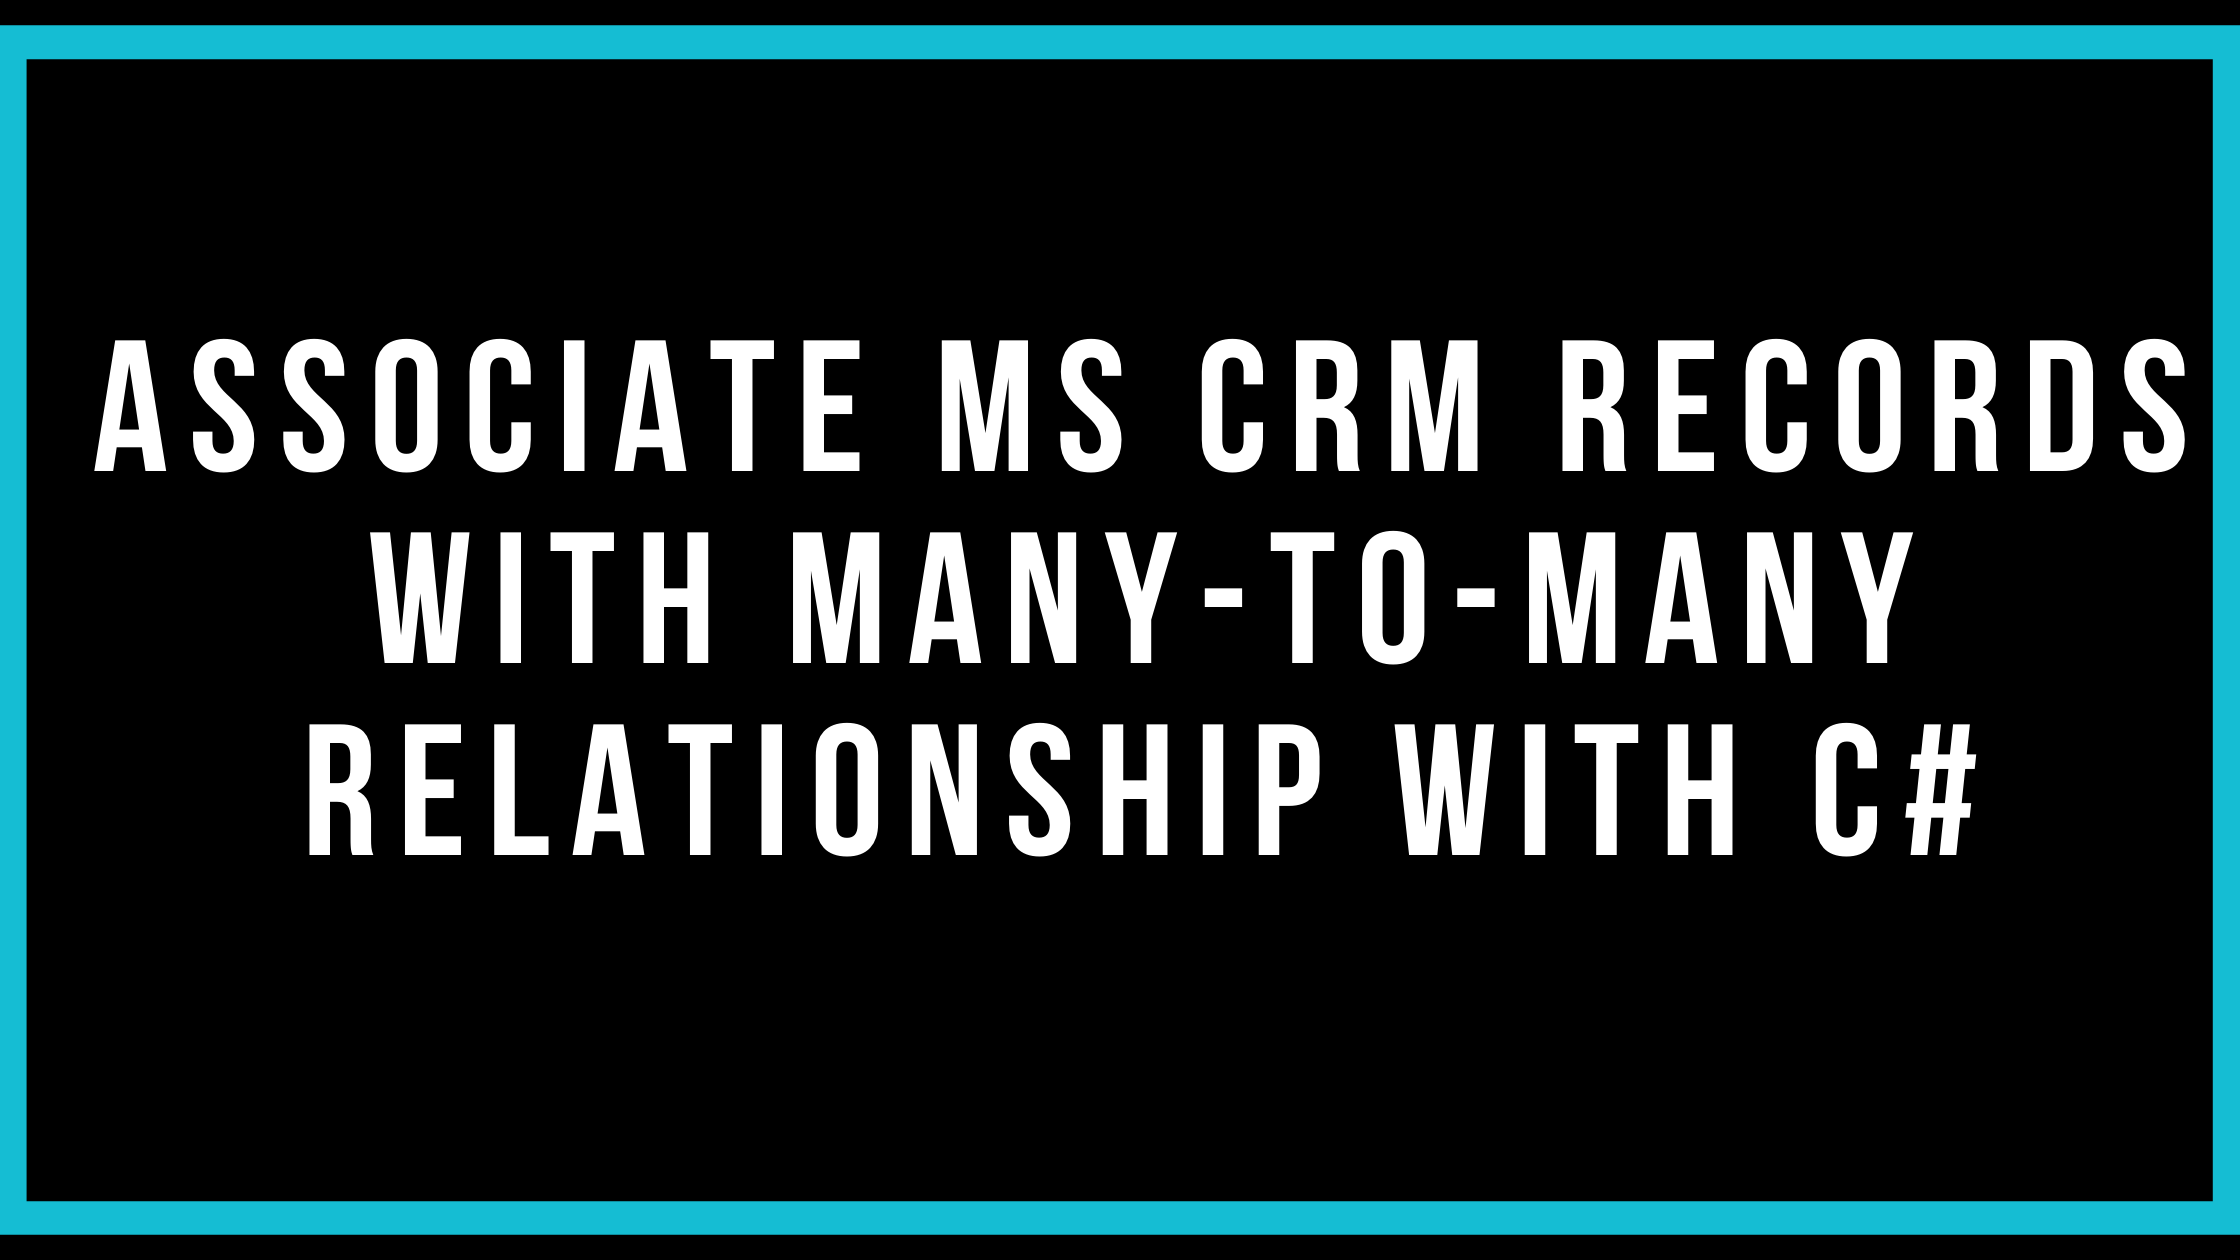 Associate MS CRM Records With Many-To-Many Relationship With C#